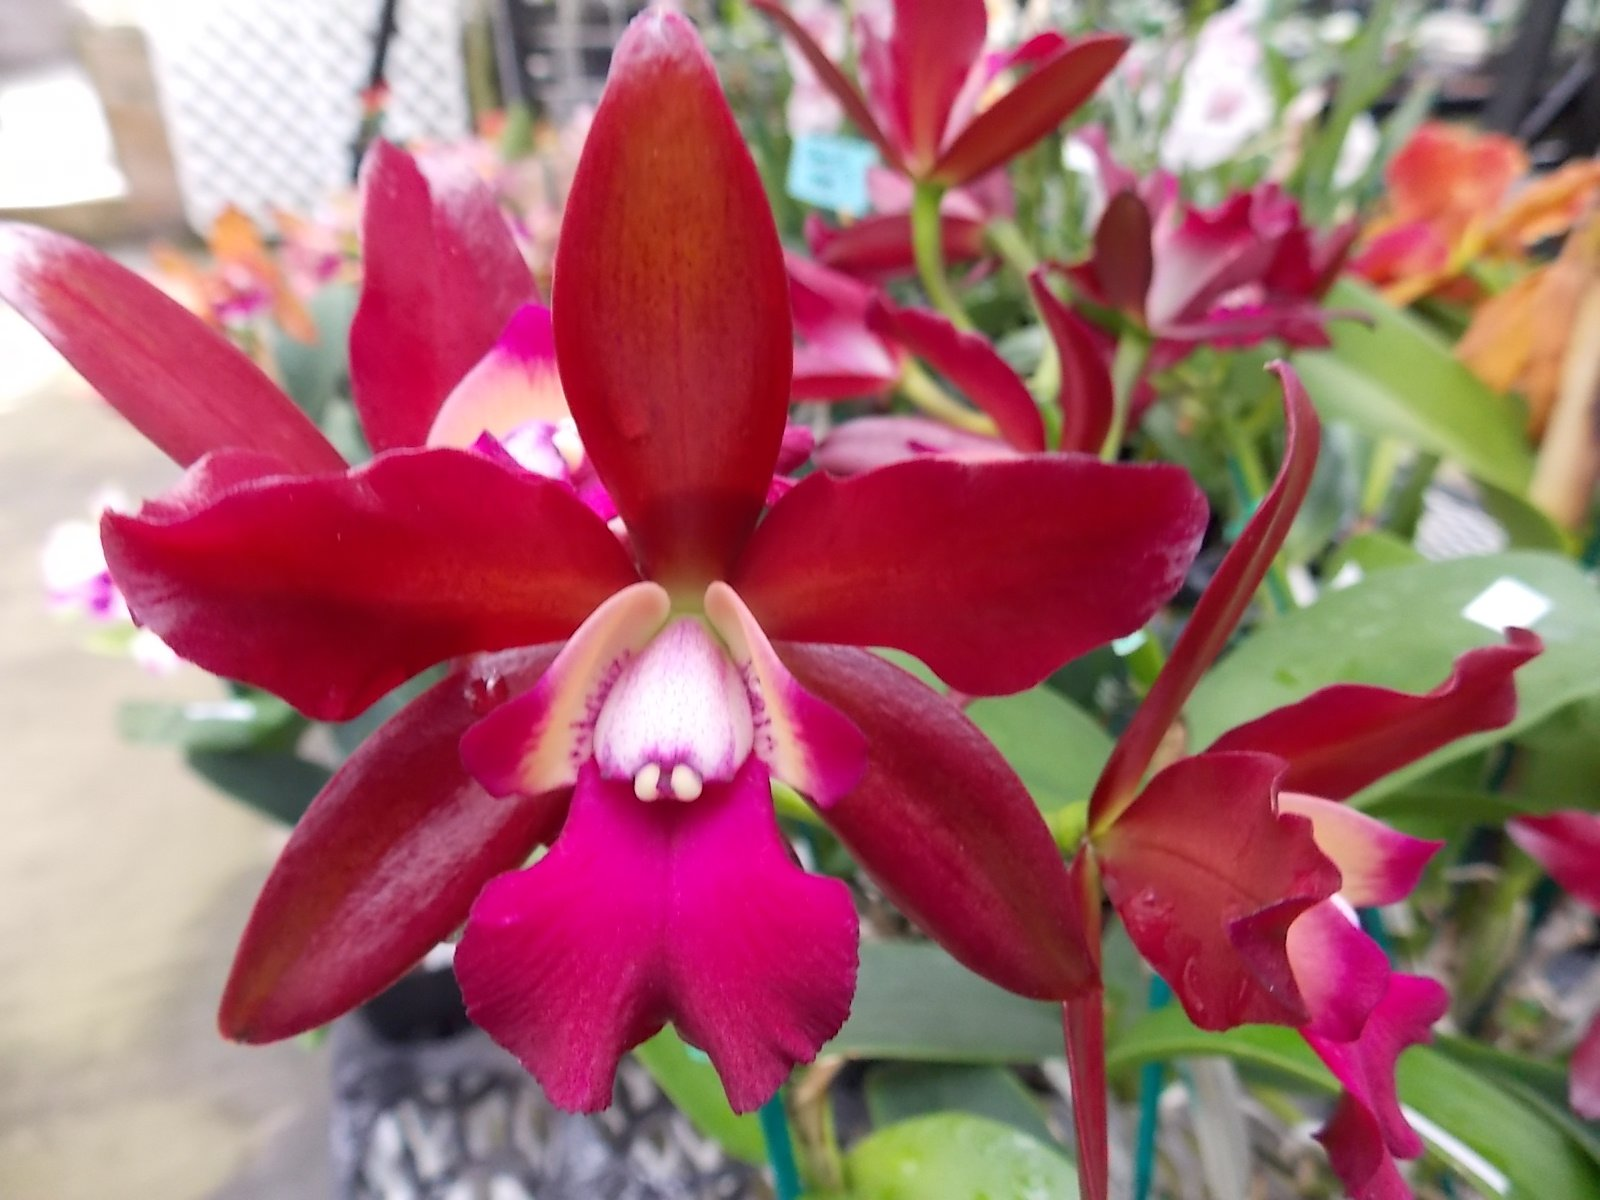 Lc. Sagarik Wax 'NN' Waxy Red! Fragrant! Easy to grow Orchid Plant! Nice! by Kawamoto Orchid Nursery (Image #1)